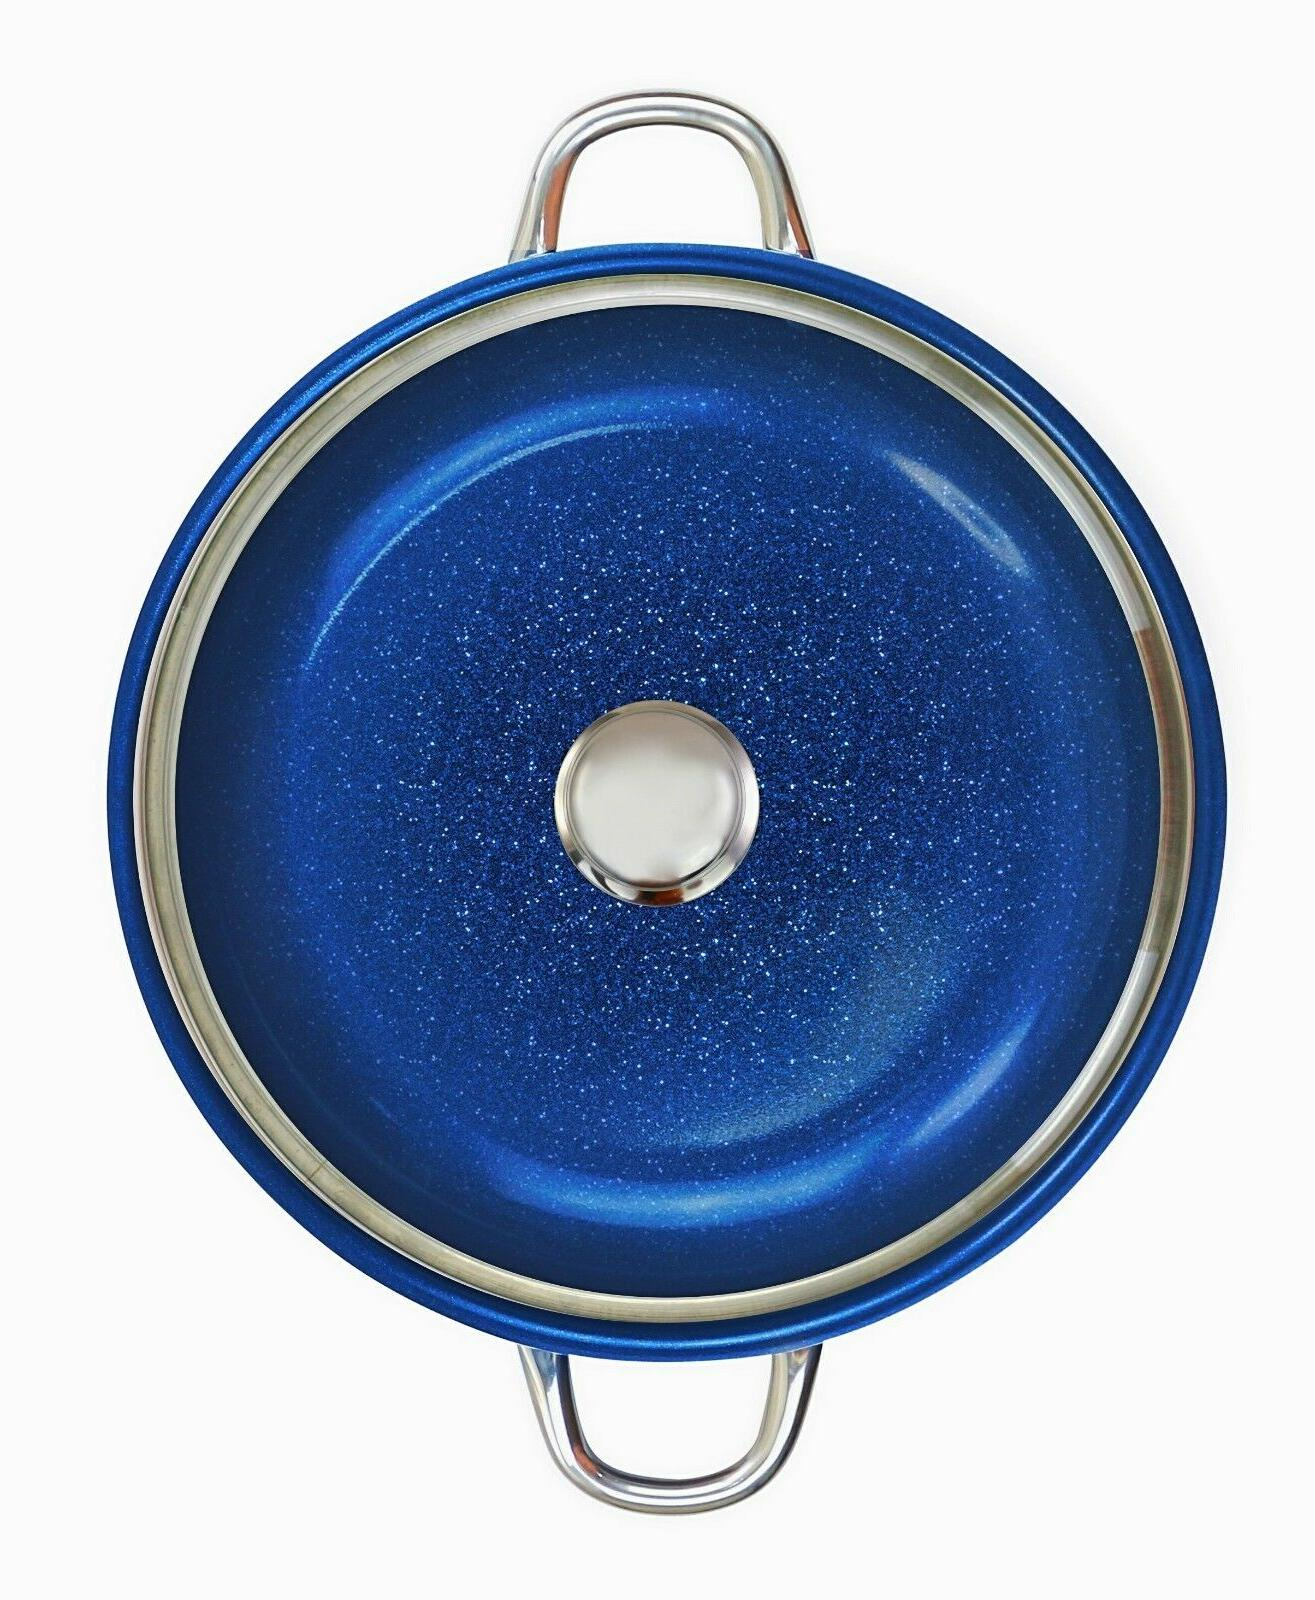 14 non stick frying pan with glass